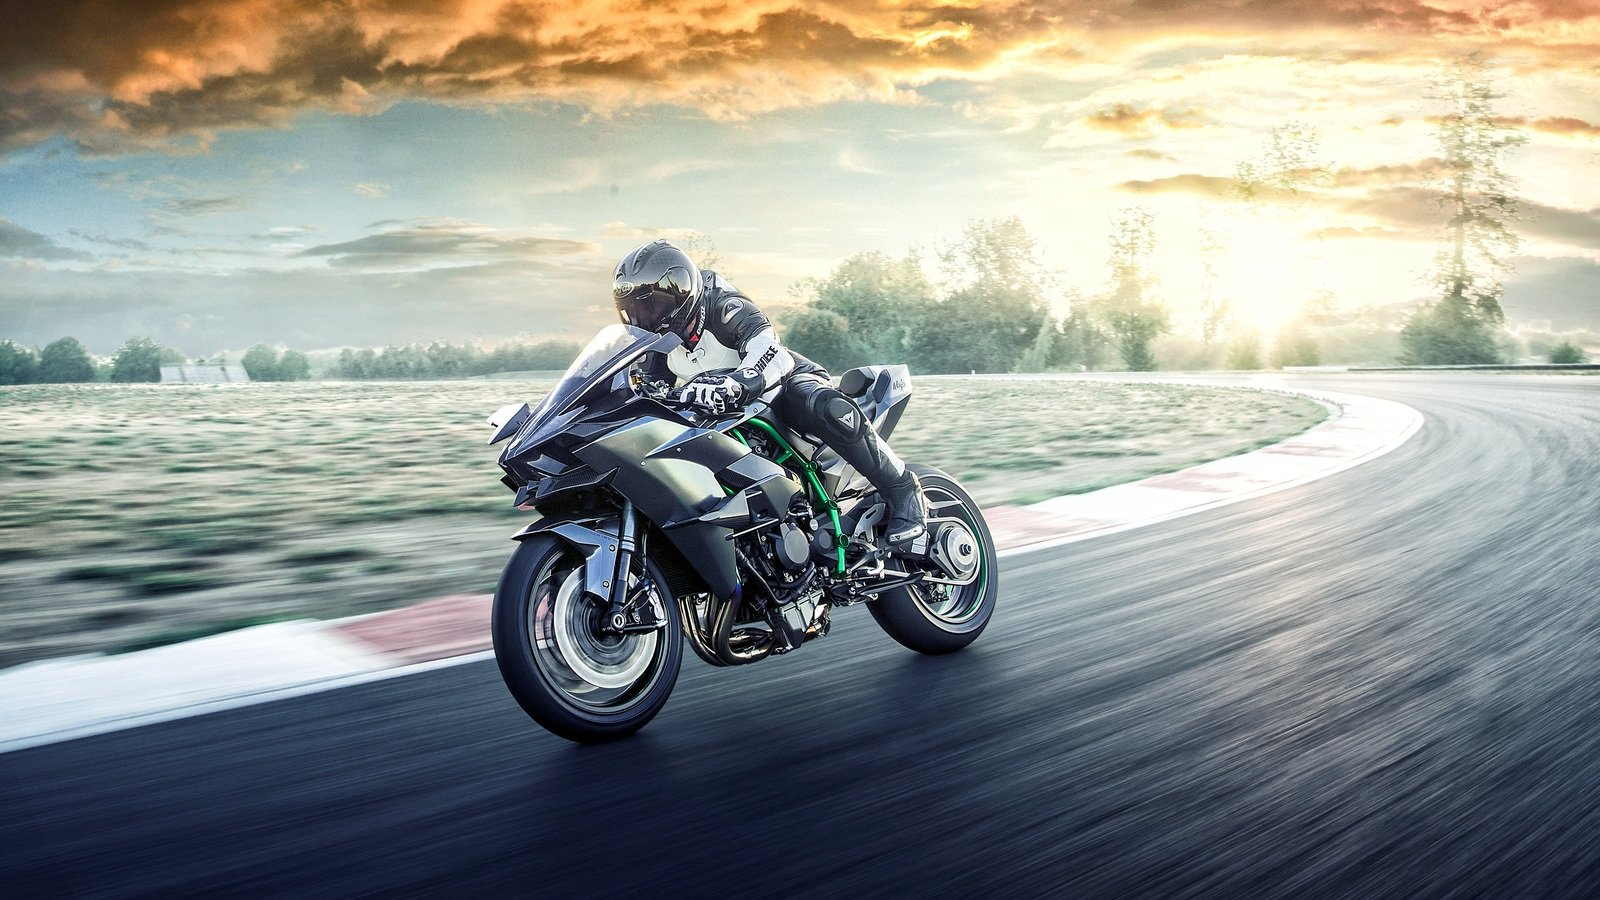 2019 Kawasaki Ninja H2 R Pictures Photos Wallpapers